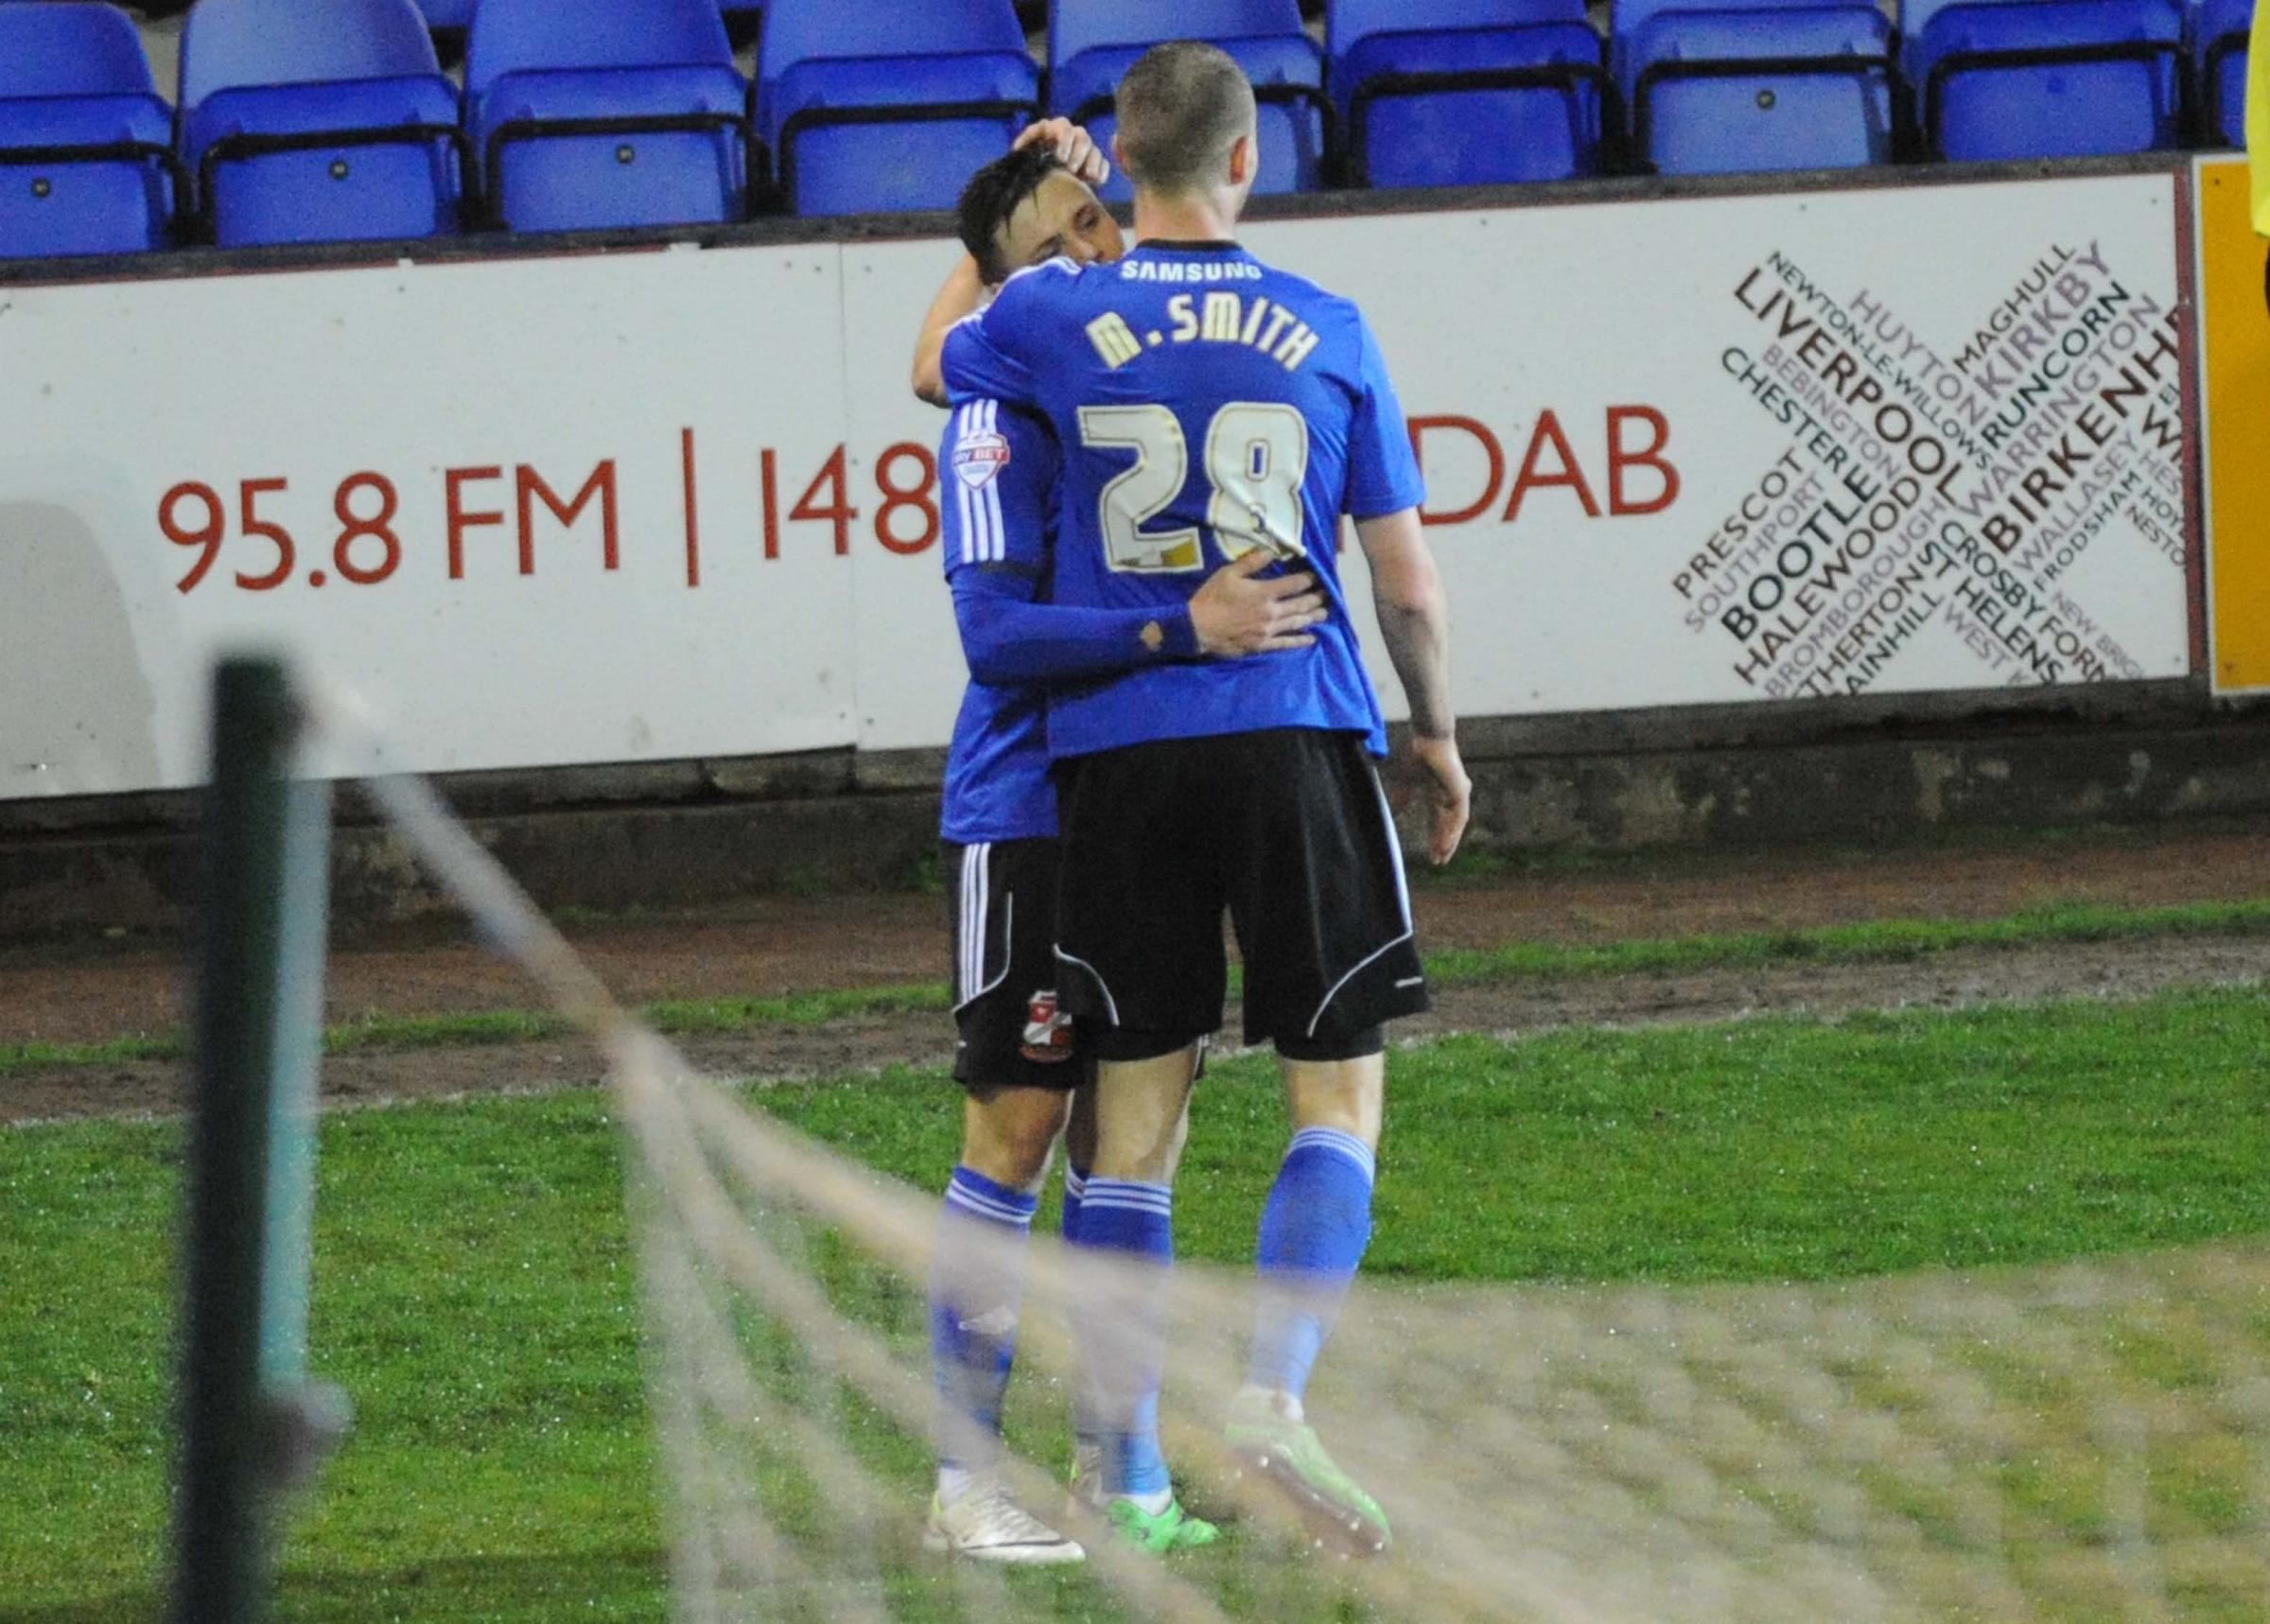 TRANMERE ROVERS 1 SWINDON TOWN 2